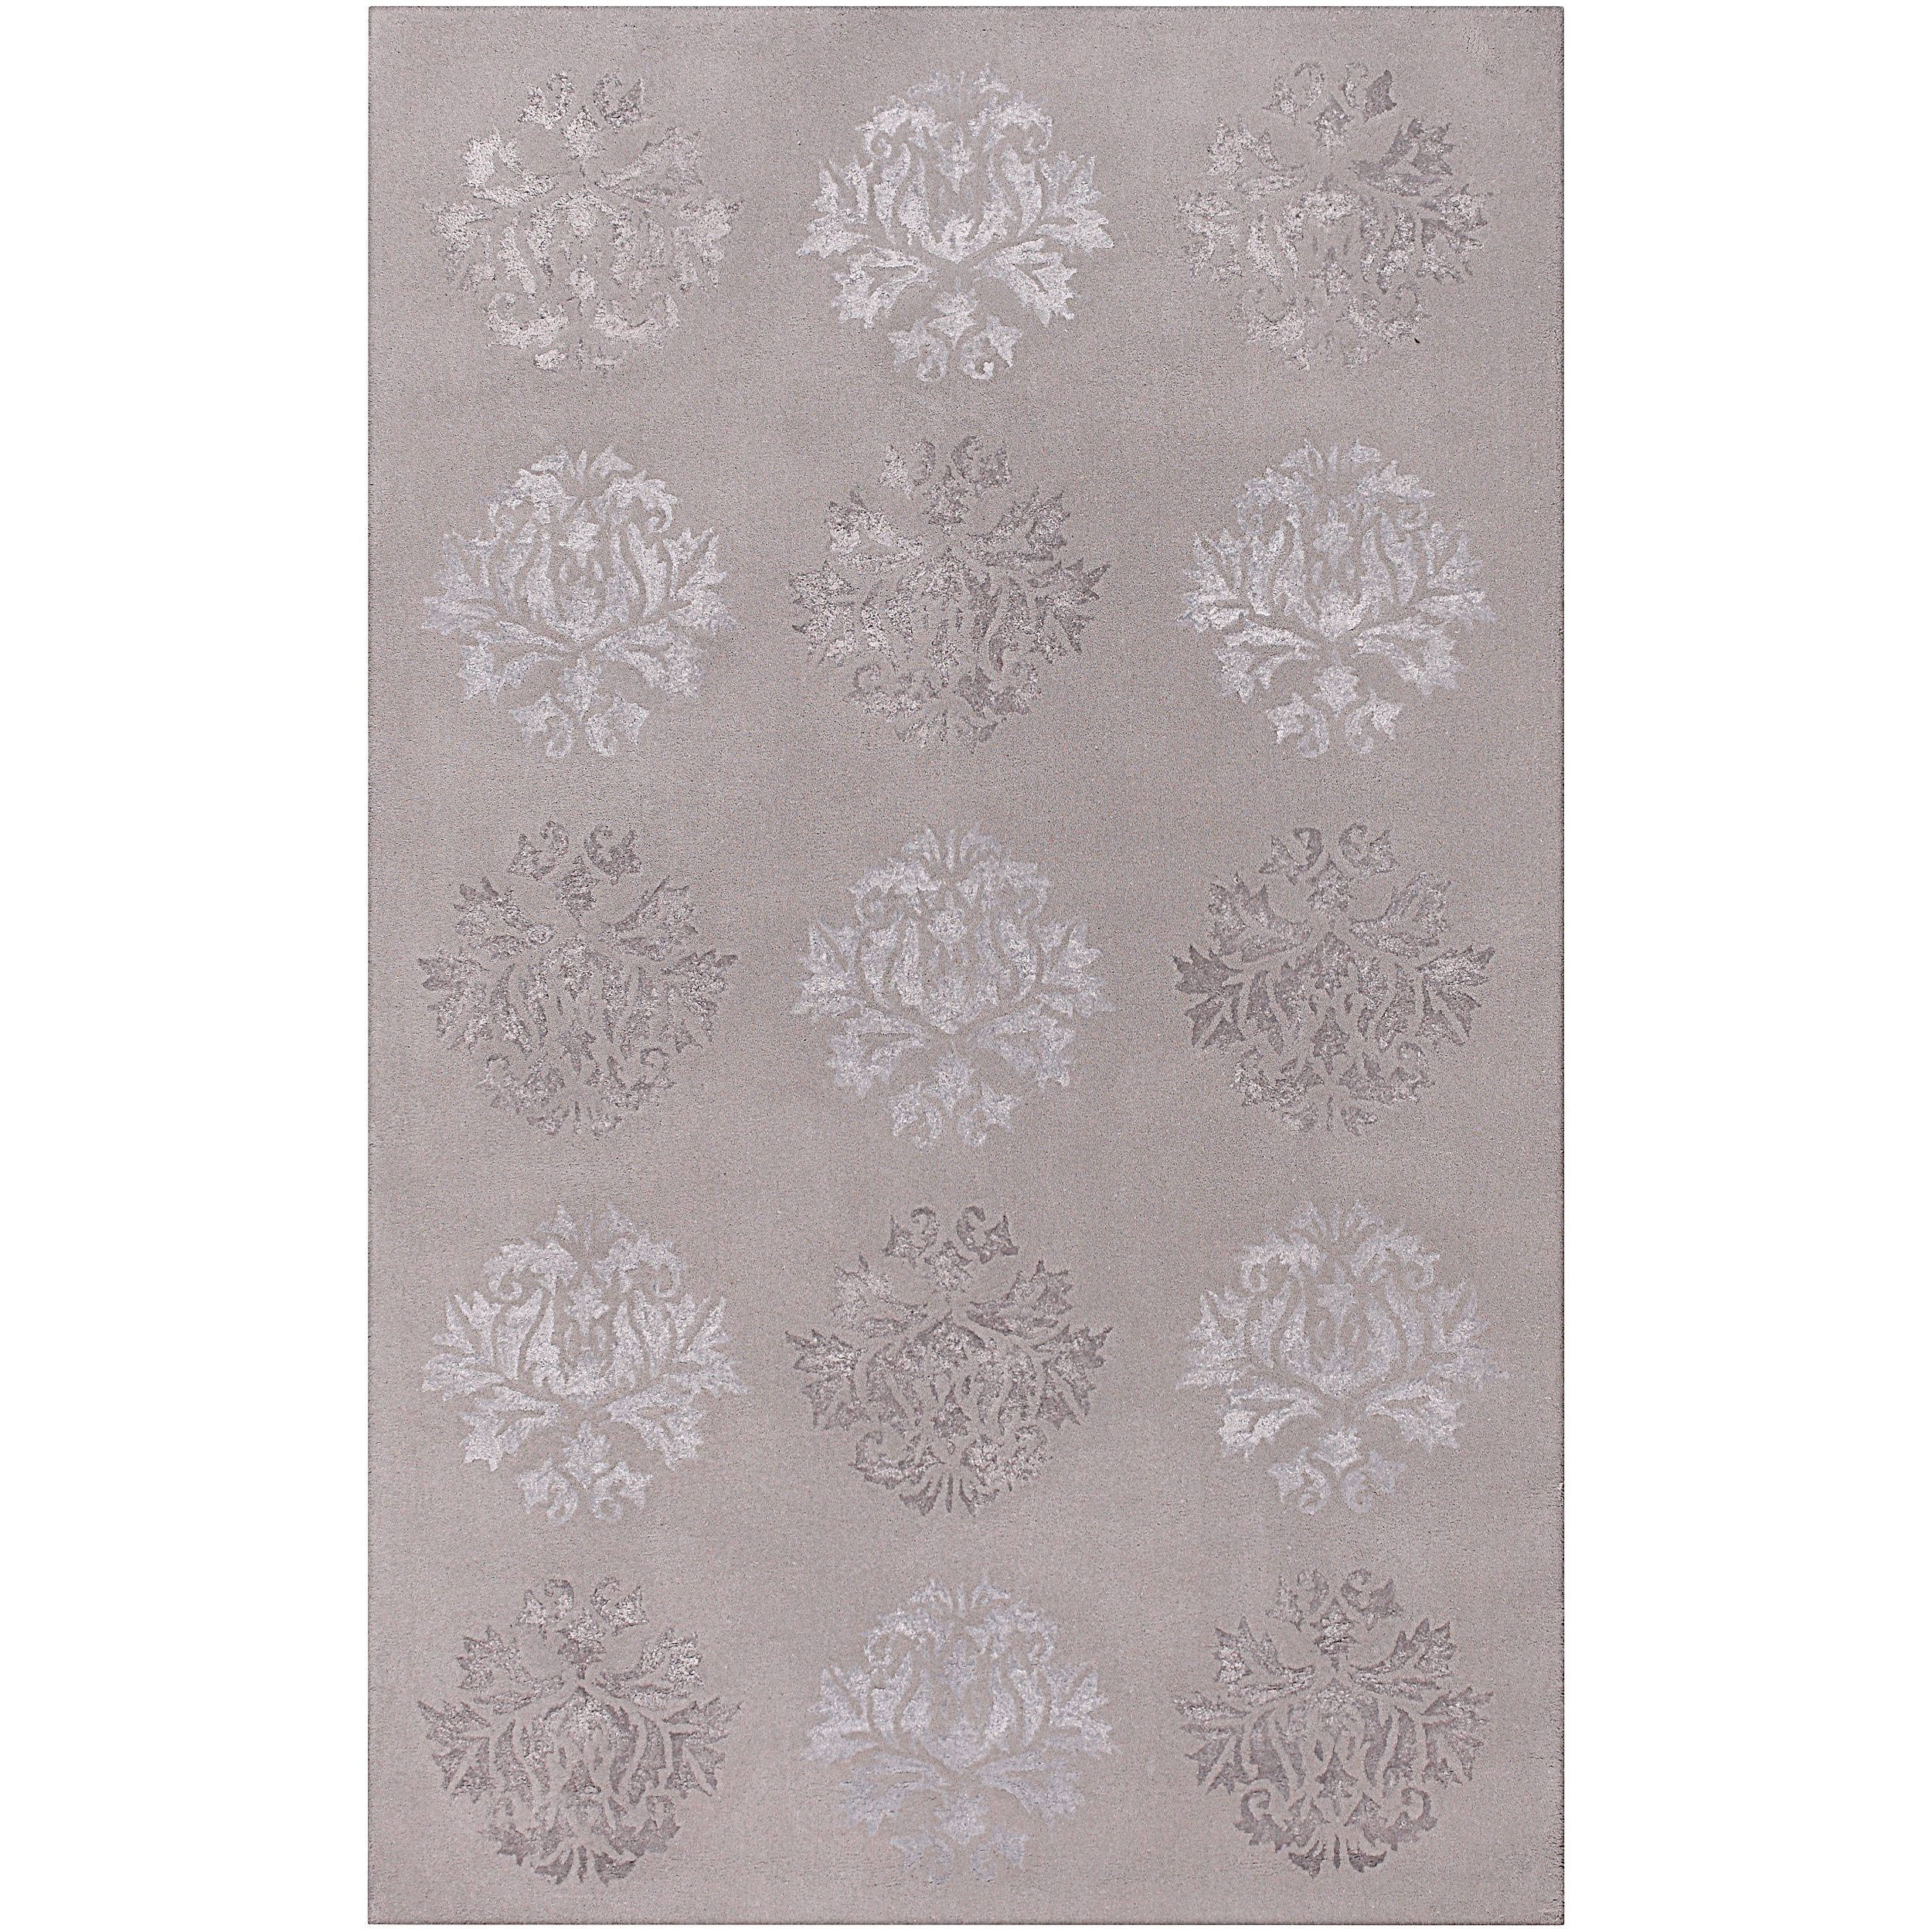 Hand-tufted Bearcreek Wool/ Viscose Rug (2' x 3')